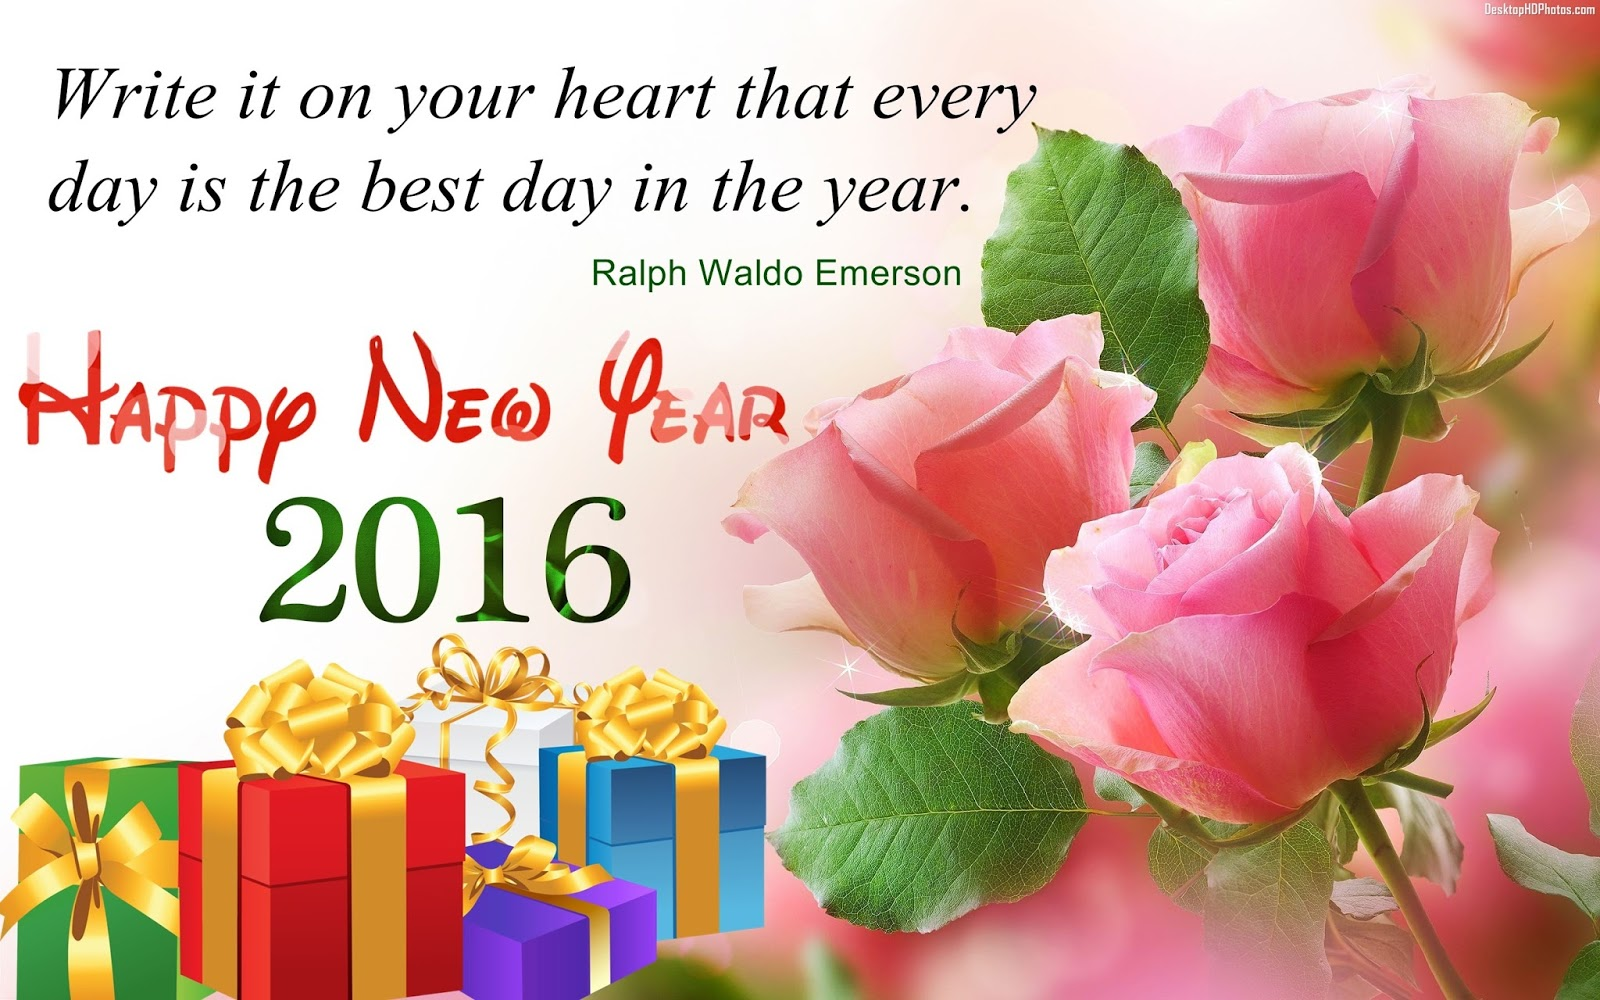 happy new year wishes 2016 in english happy new year 2016 hd wallpaper